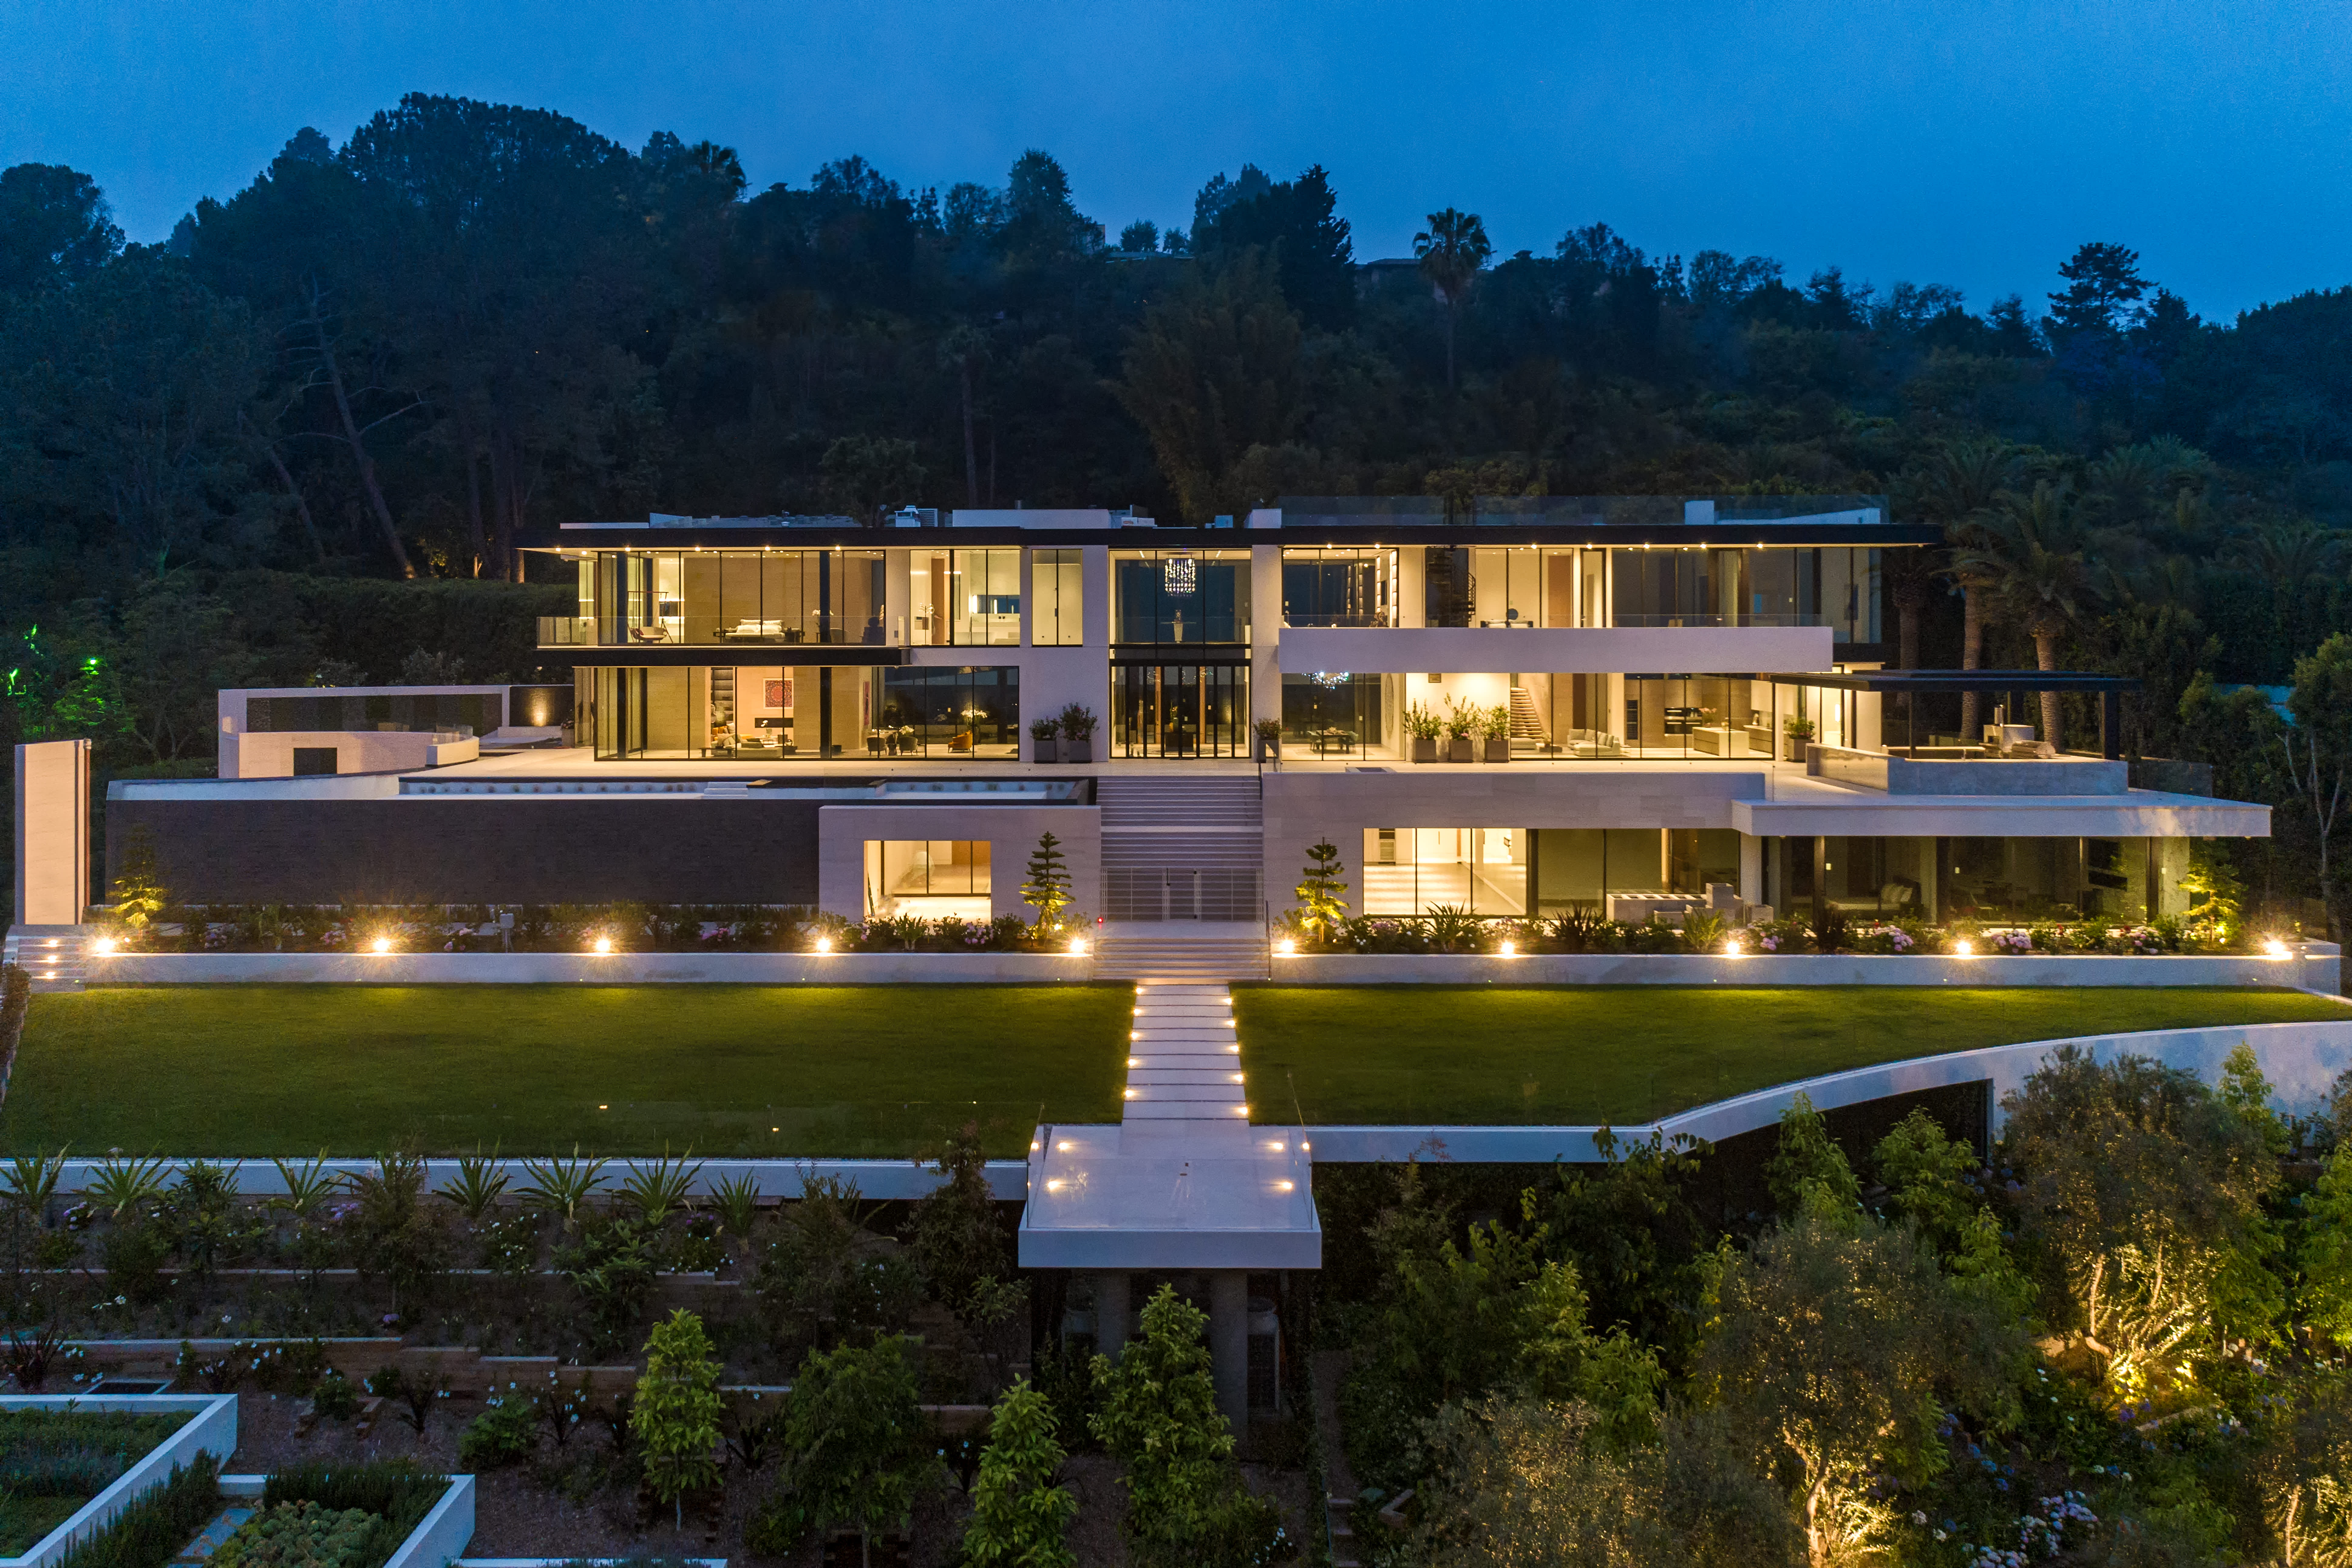 Tremendous Photos Inside The Most Expensive Rental Property In Us Interior Design Ideas Gresisoteloinfo